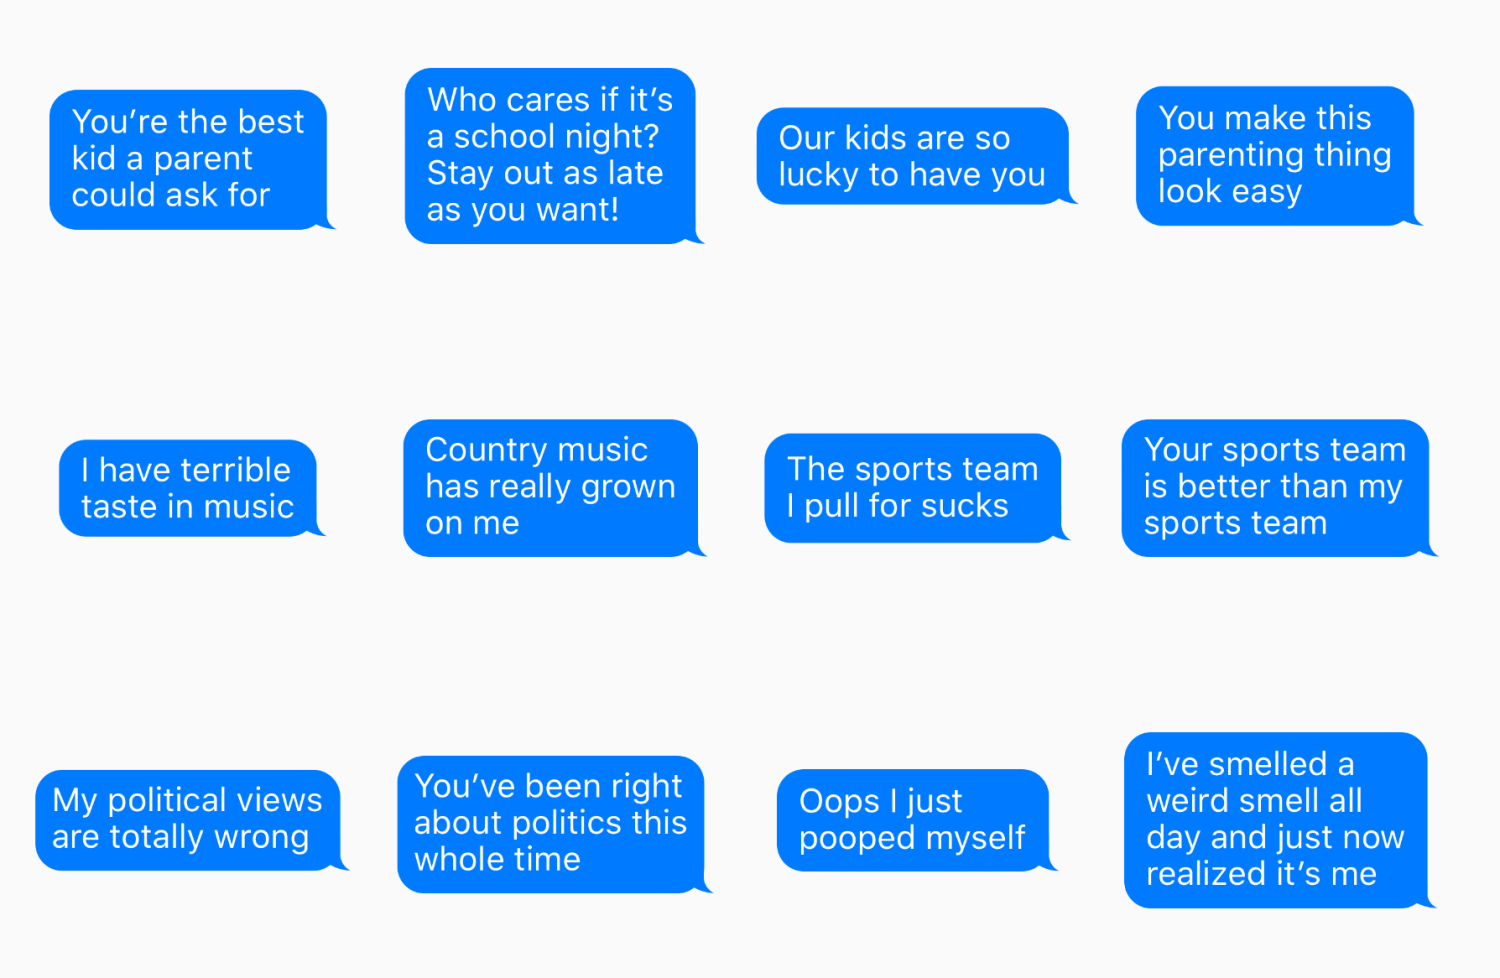 This crazy iMessage app lets you prank friends by putting